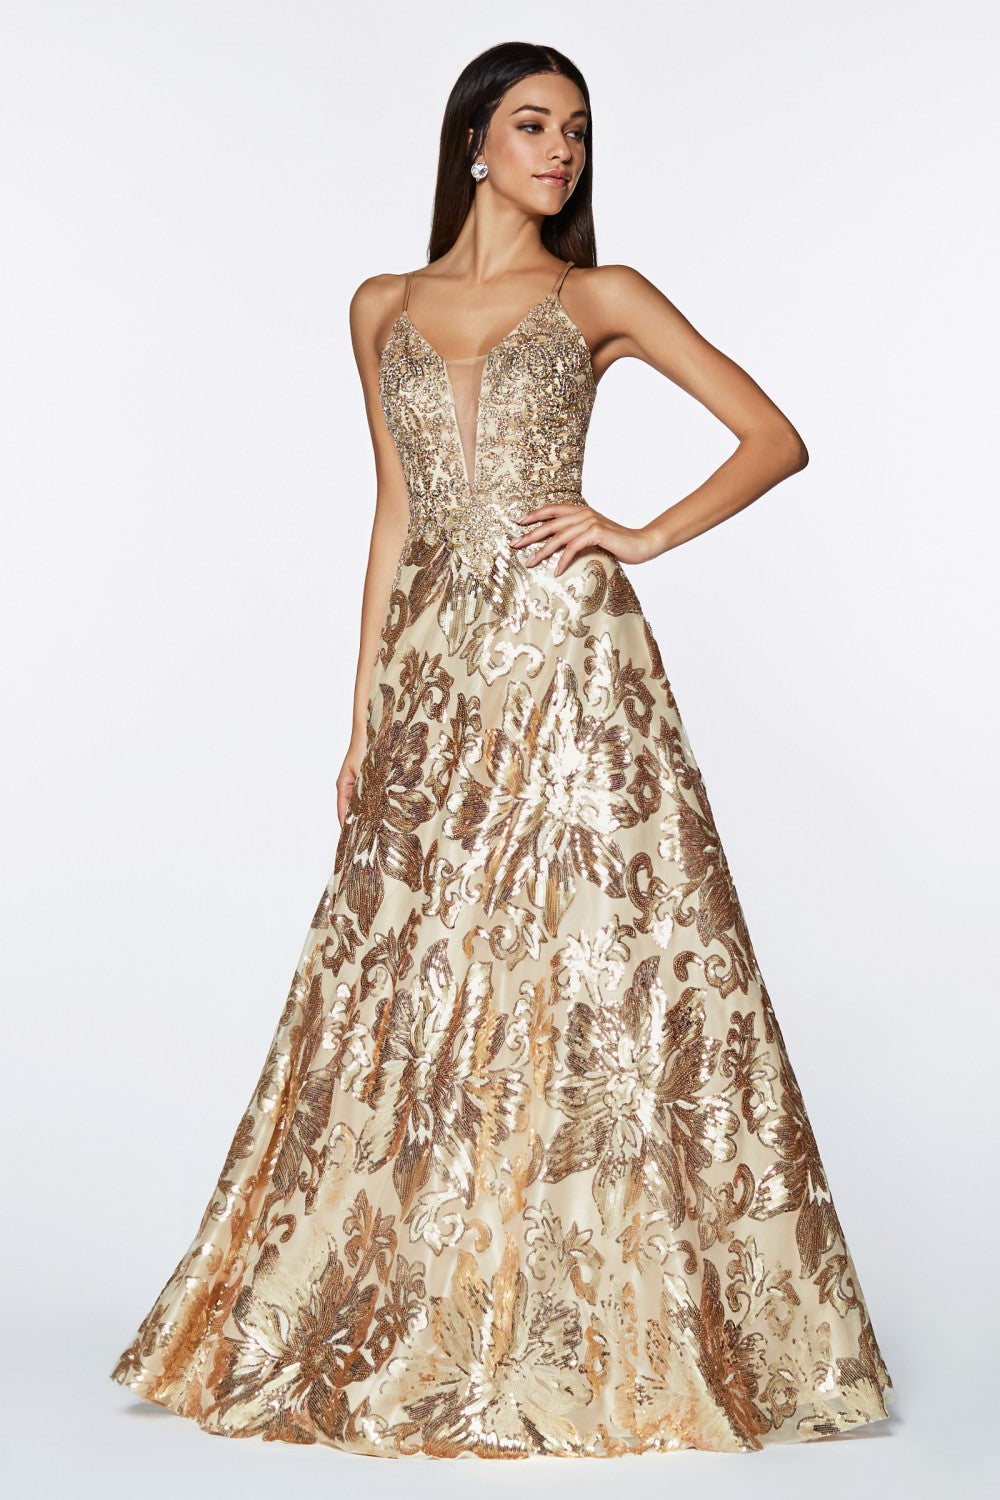 A-Line Sequin Gown With Floral Design And Criss Cross Back